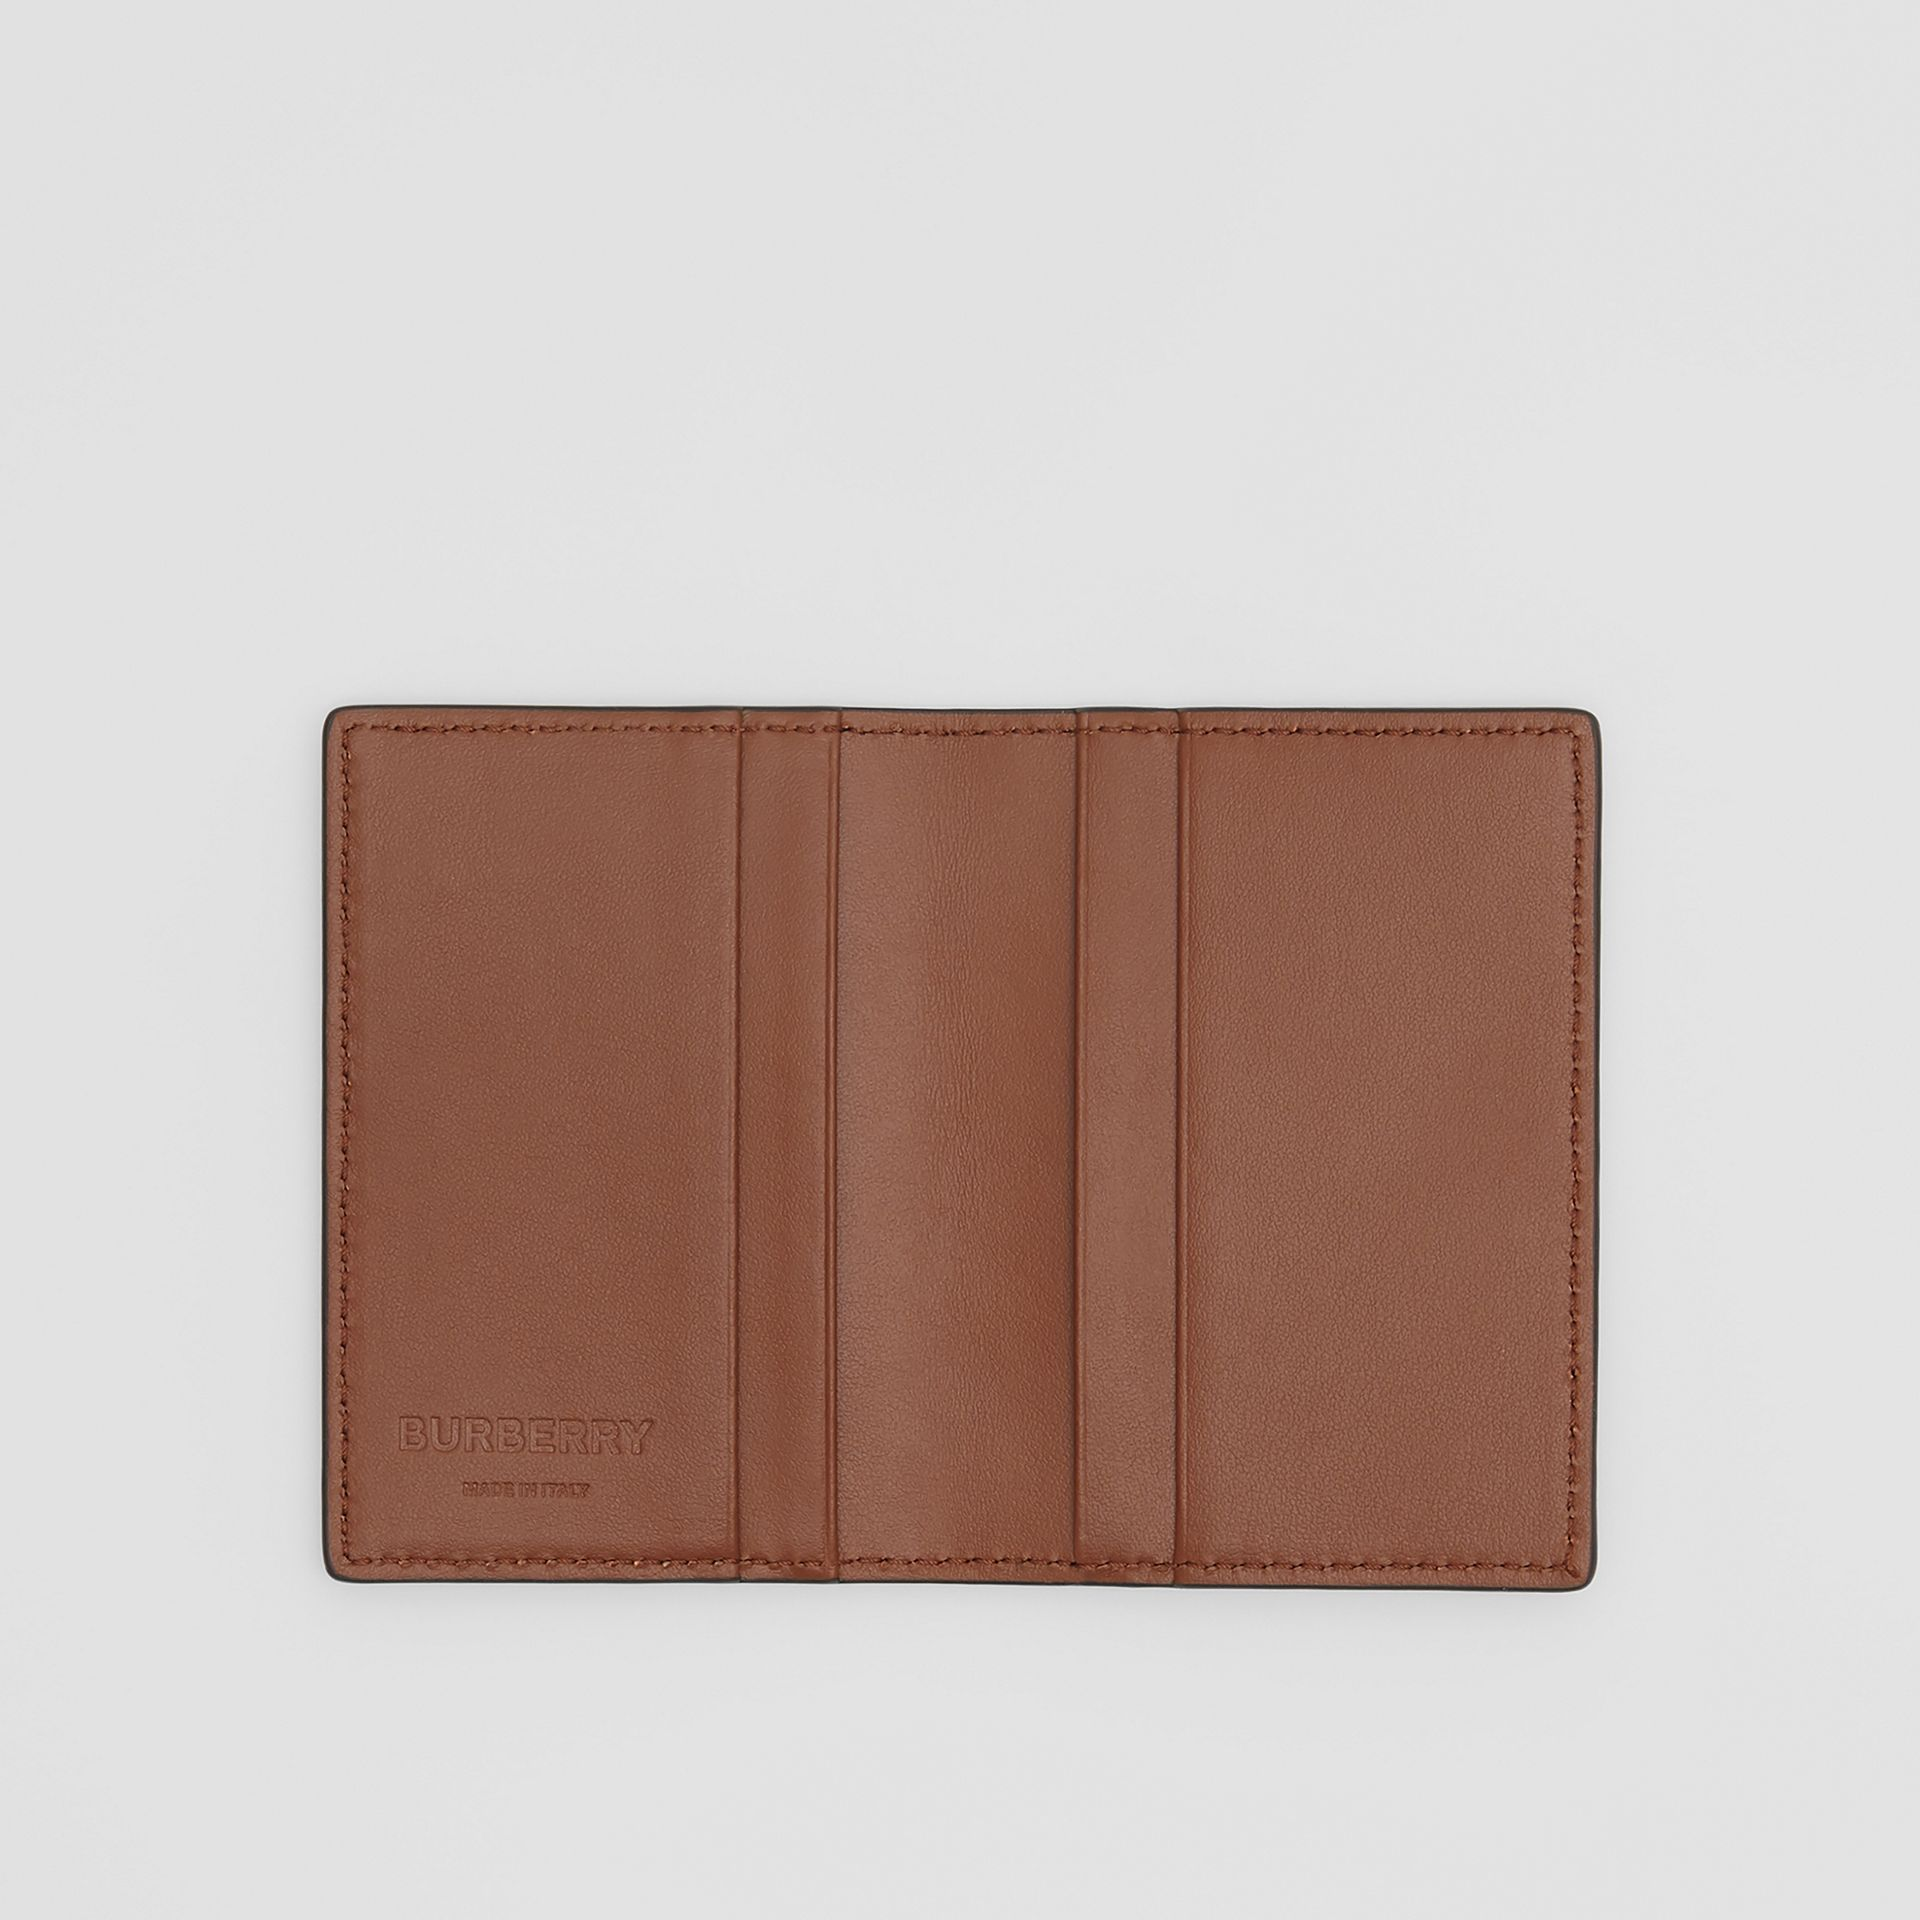 Monogram Leather Bifold Card Case in Dark Tan - Men | Burberry - gallery image 2